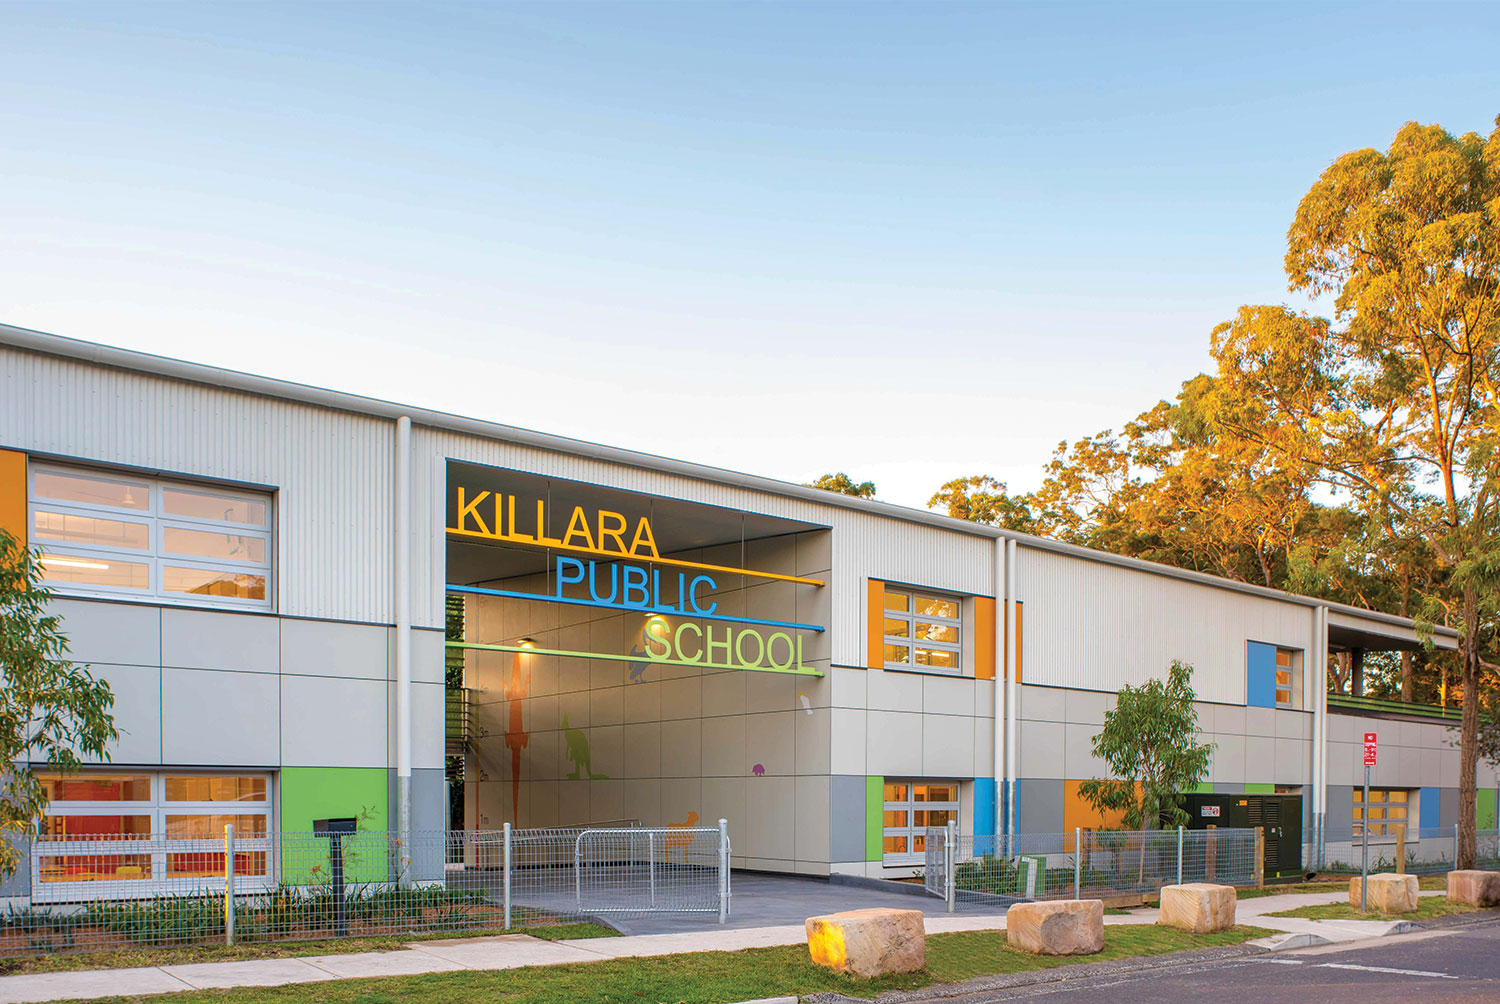 DesignInc_Killara-School-Image-01